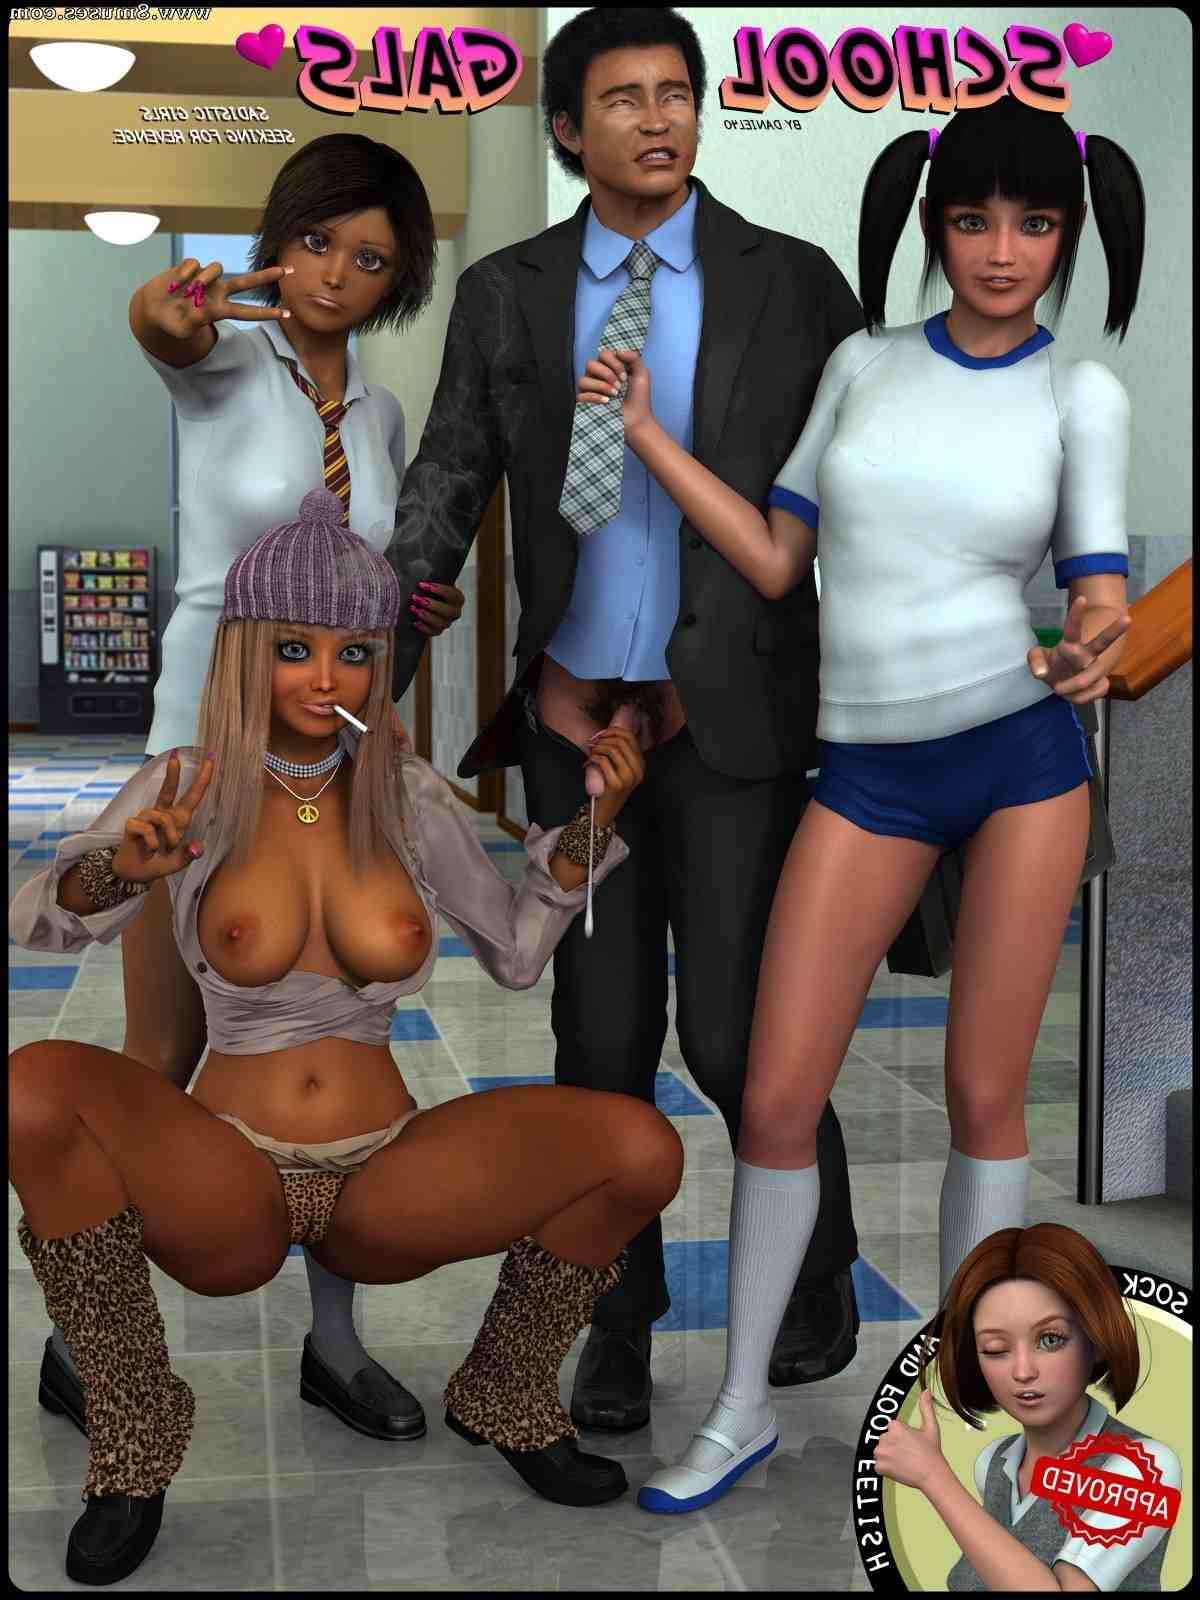 Daniel40-Comics/School-Gals School_Gals__8muses_-_Sex_and_Porn_Comics.jpg